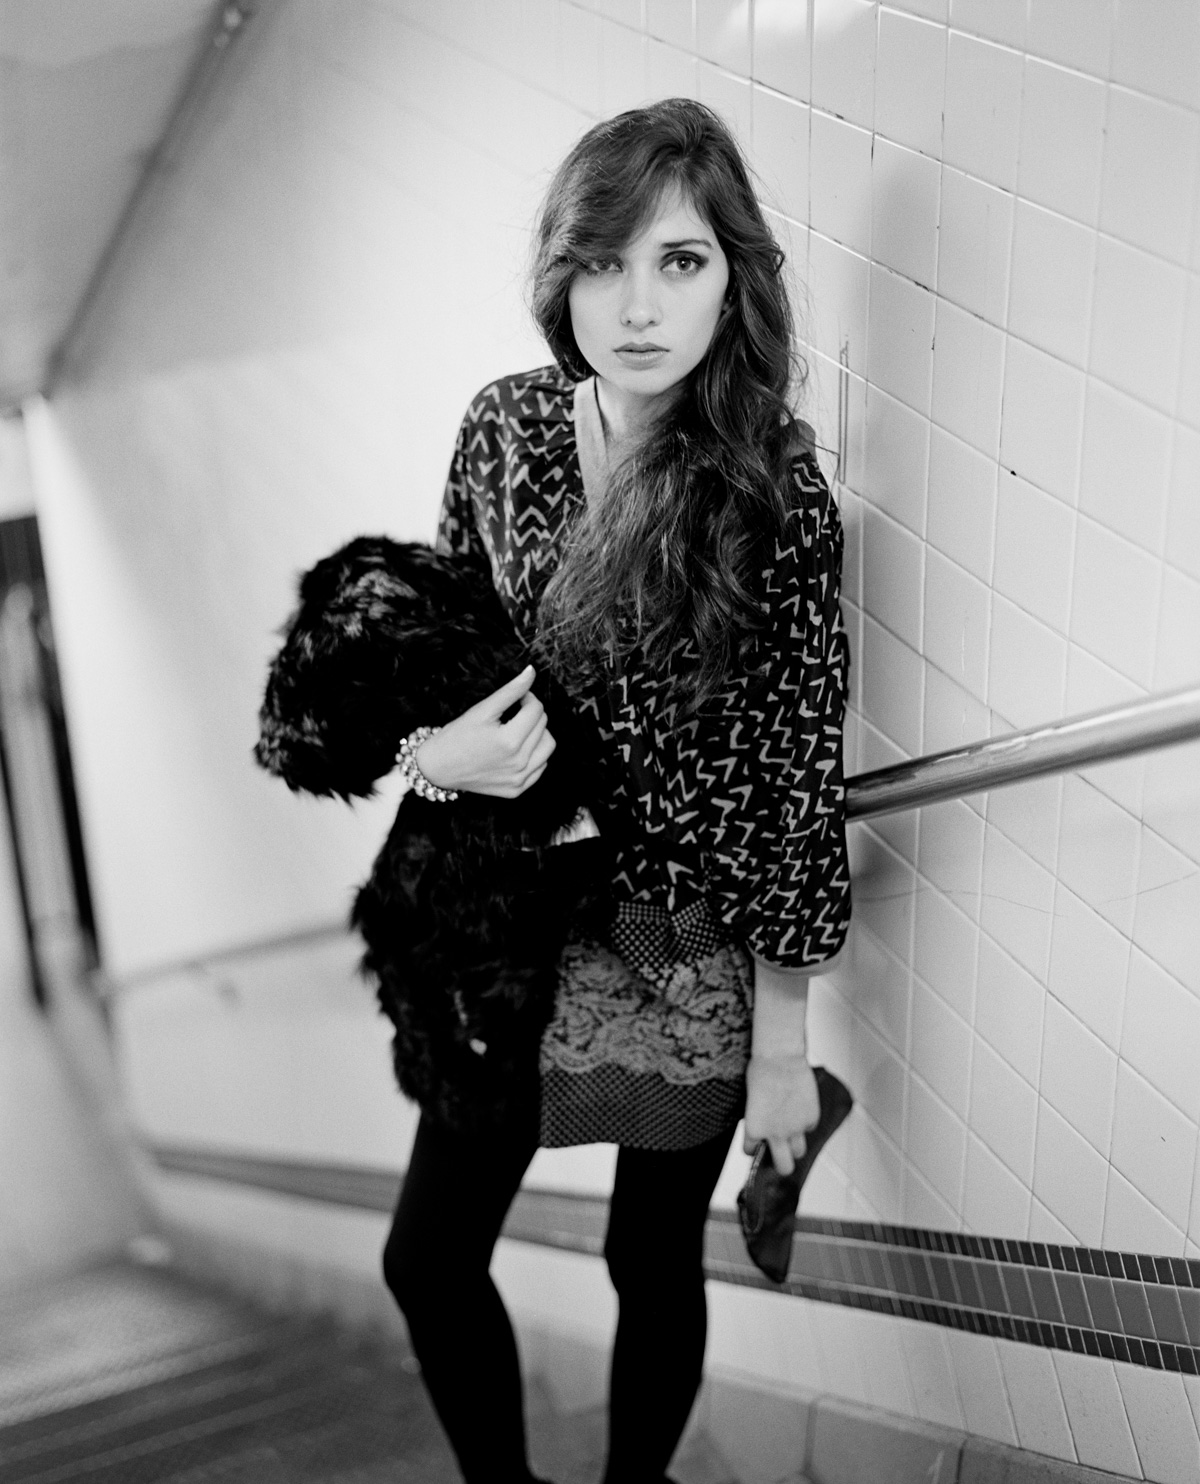 NYC street fashion photography in black and white with model Alexandra Chelaru subway station for French fashion brand Nu New York Union Square